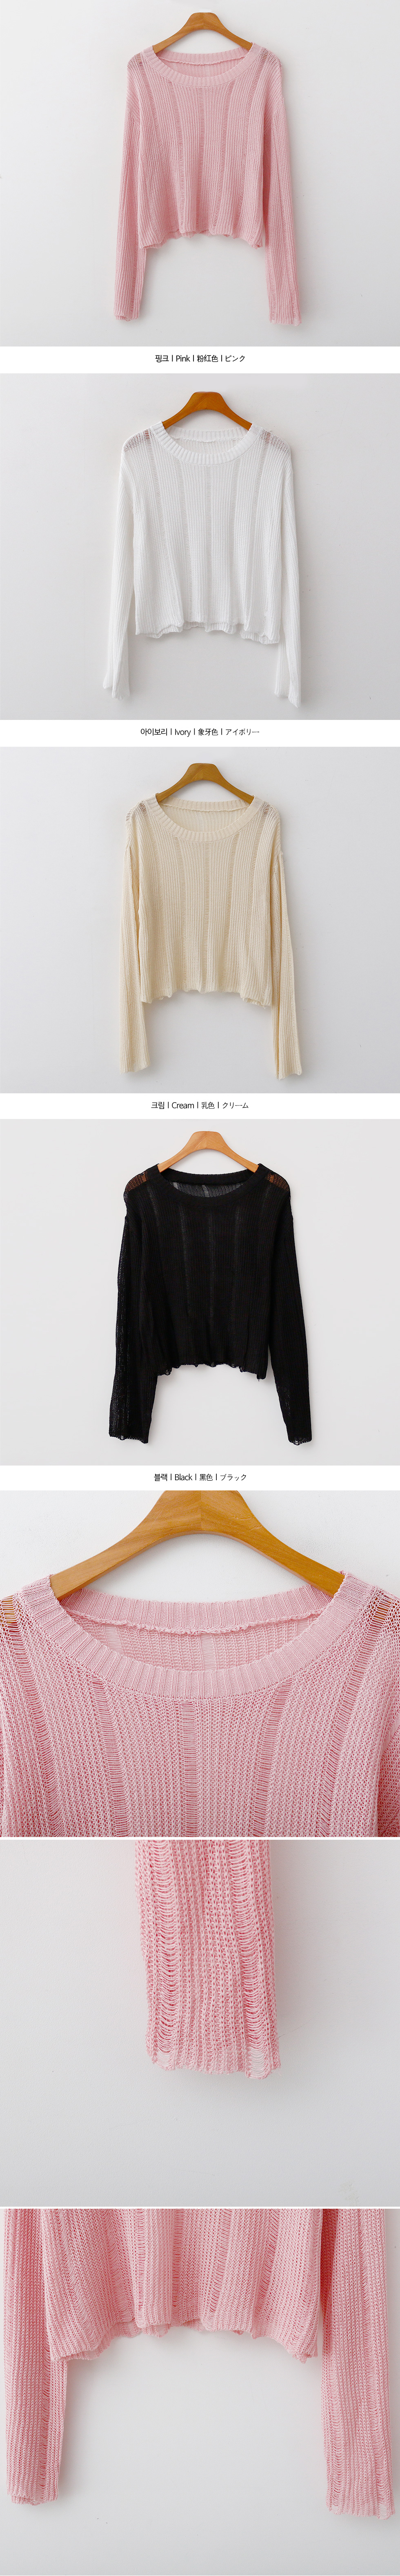 Another Crop Knitwear